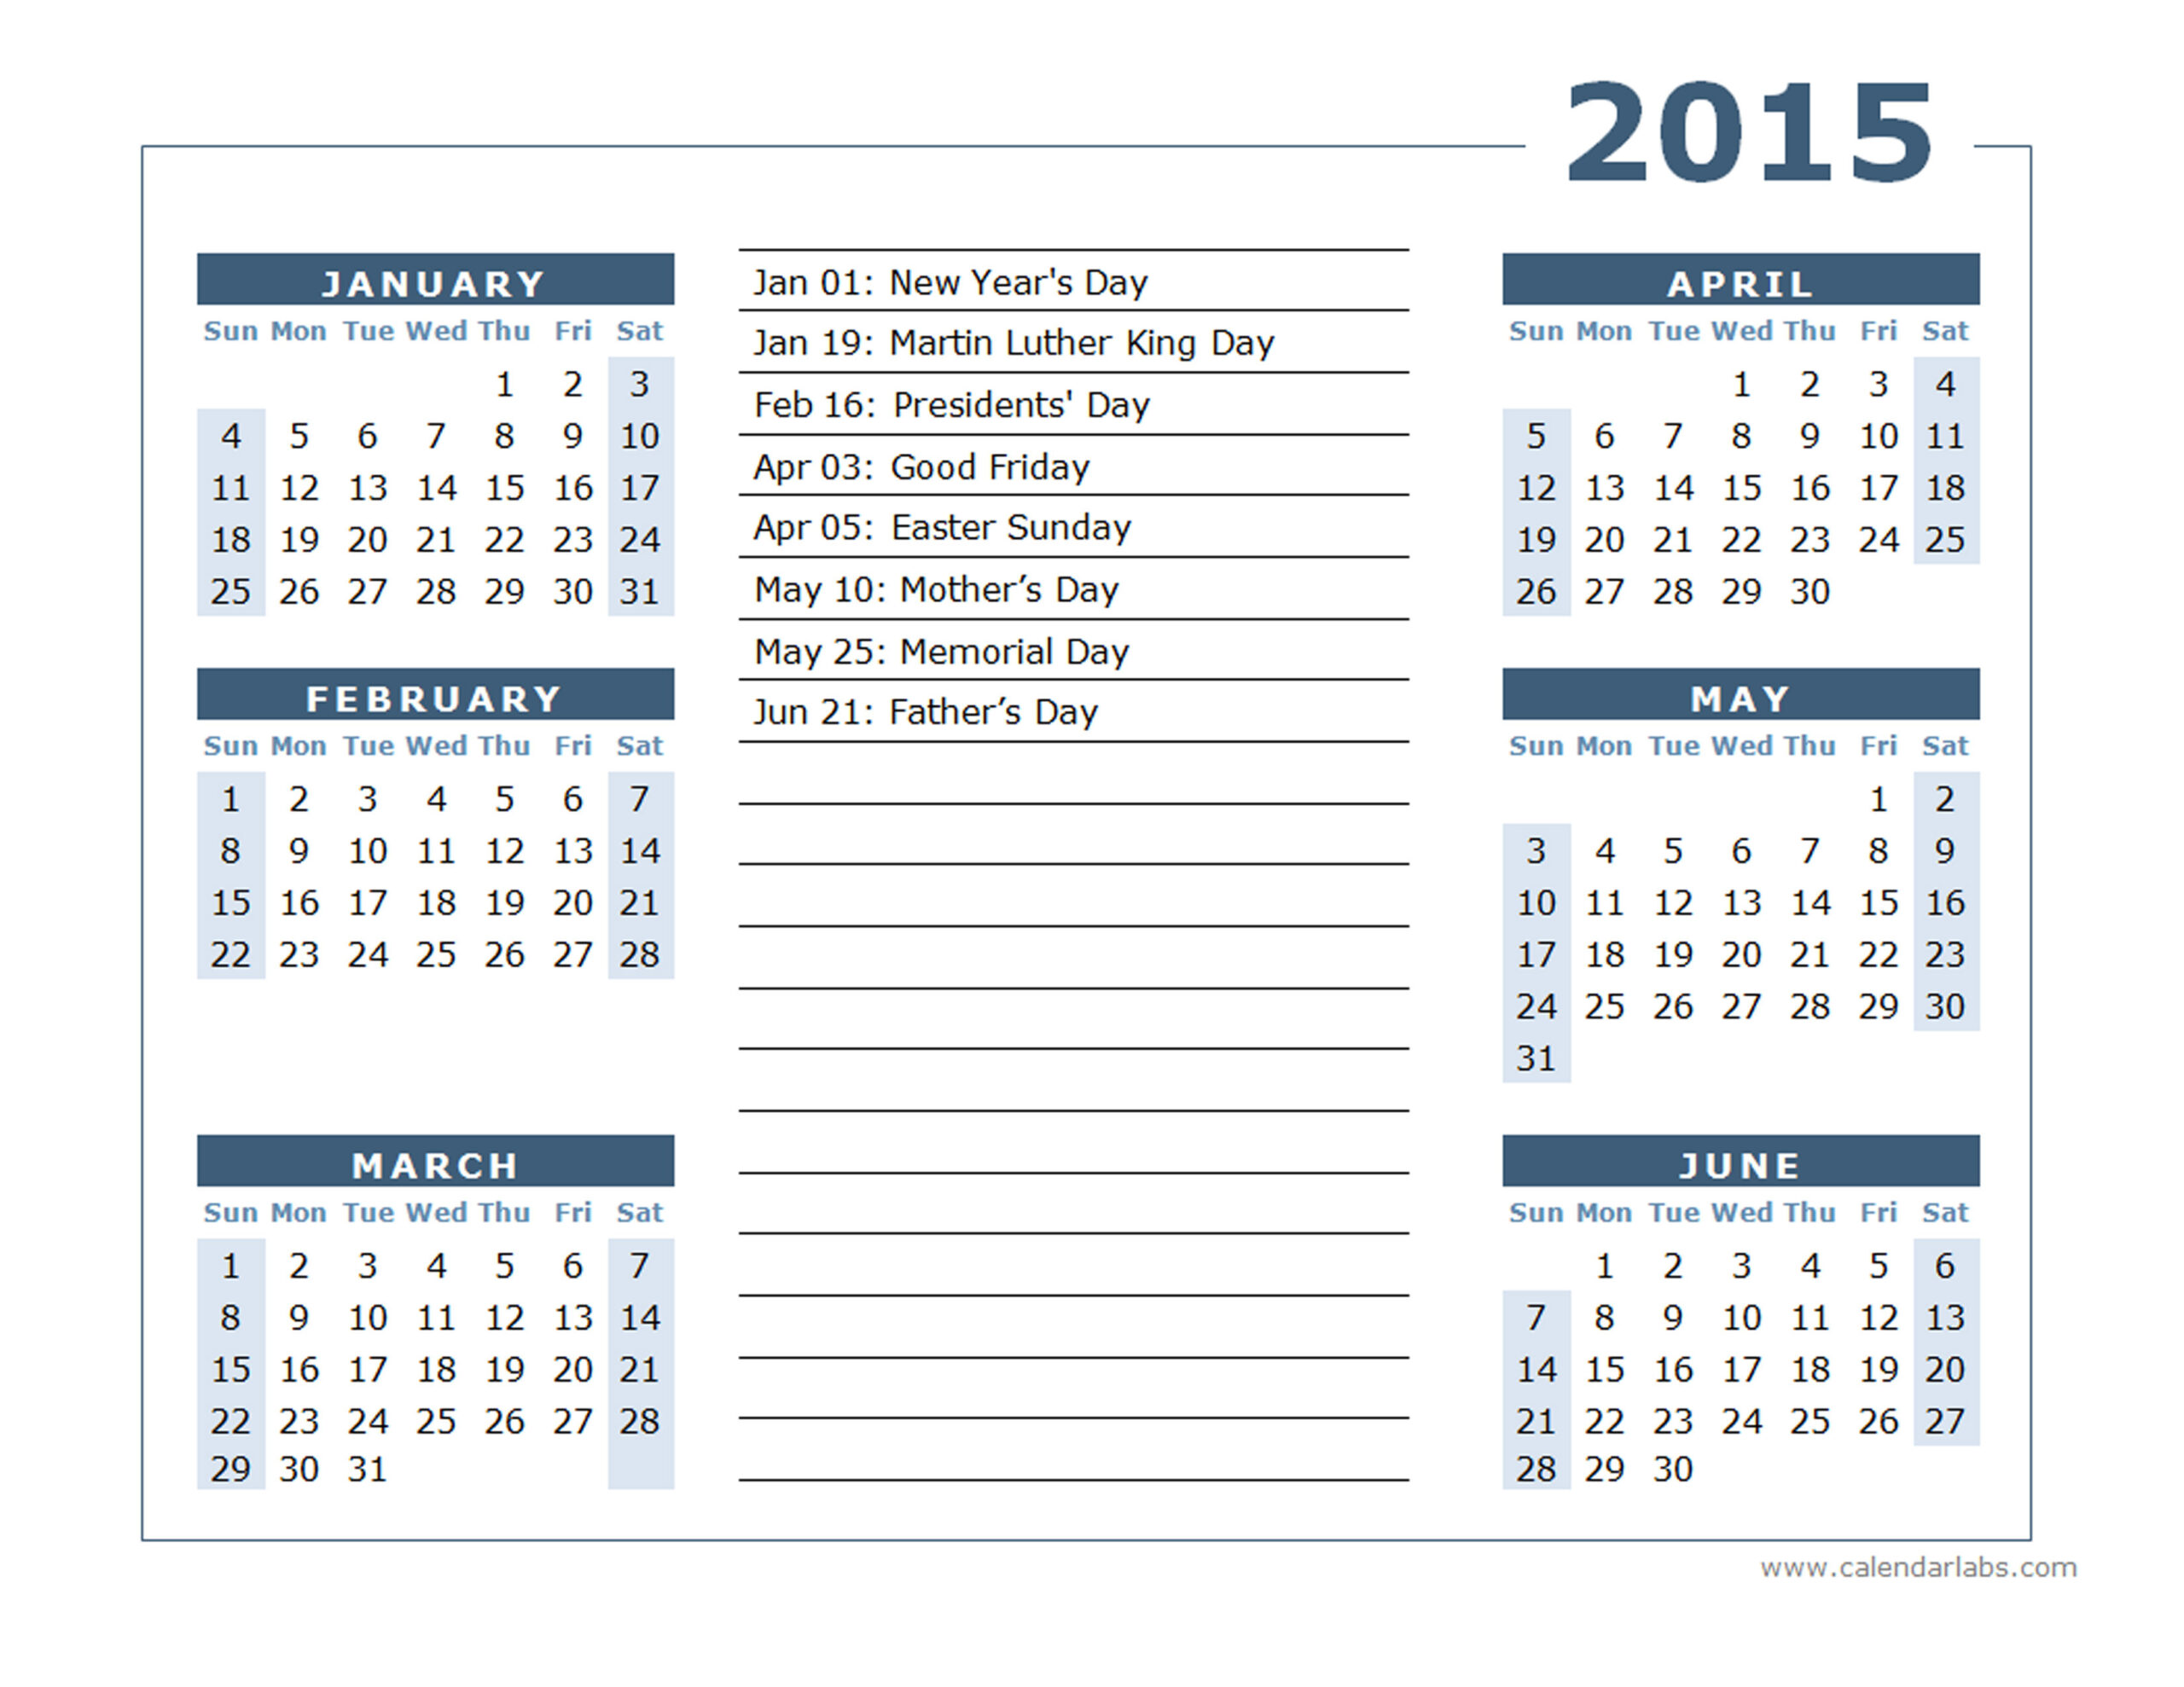 2015 Yearly Calendar Two Page 02 - Free Printable Templates  12 Month Financial Year Calendar 18 To 19